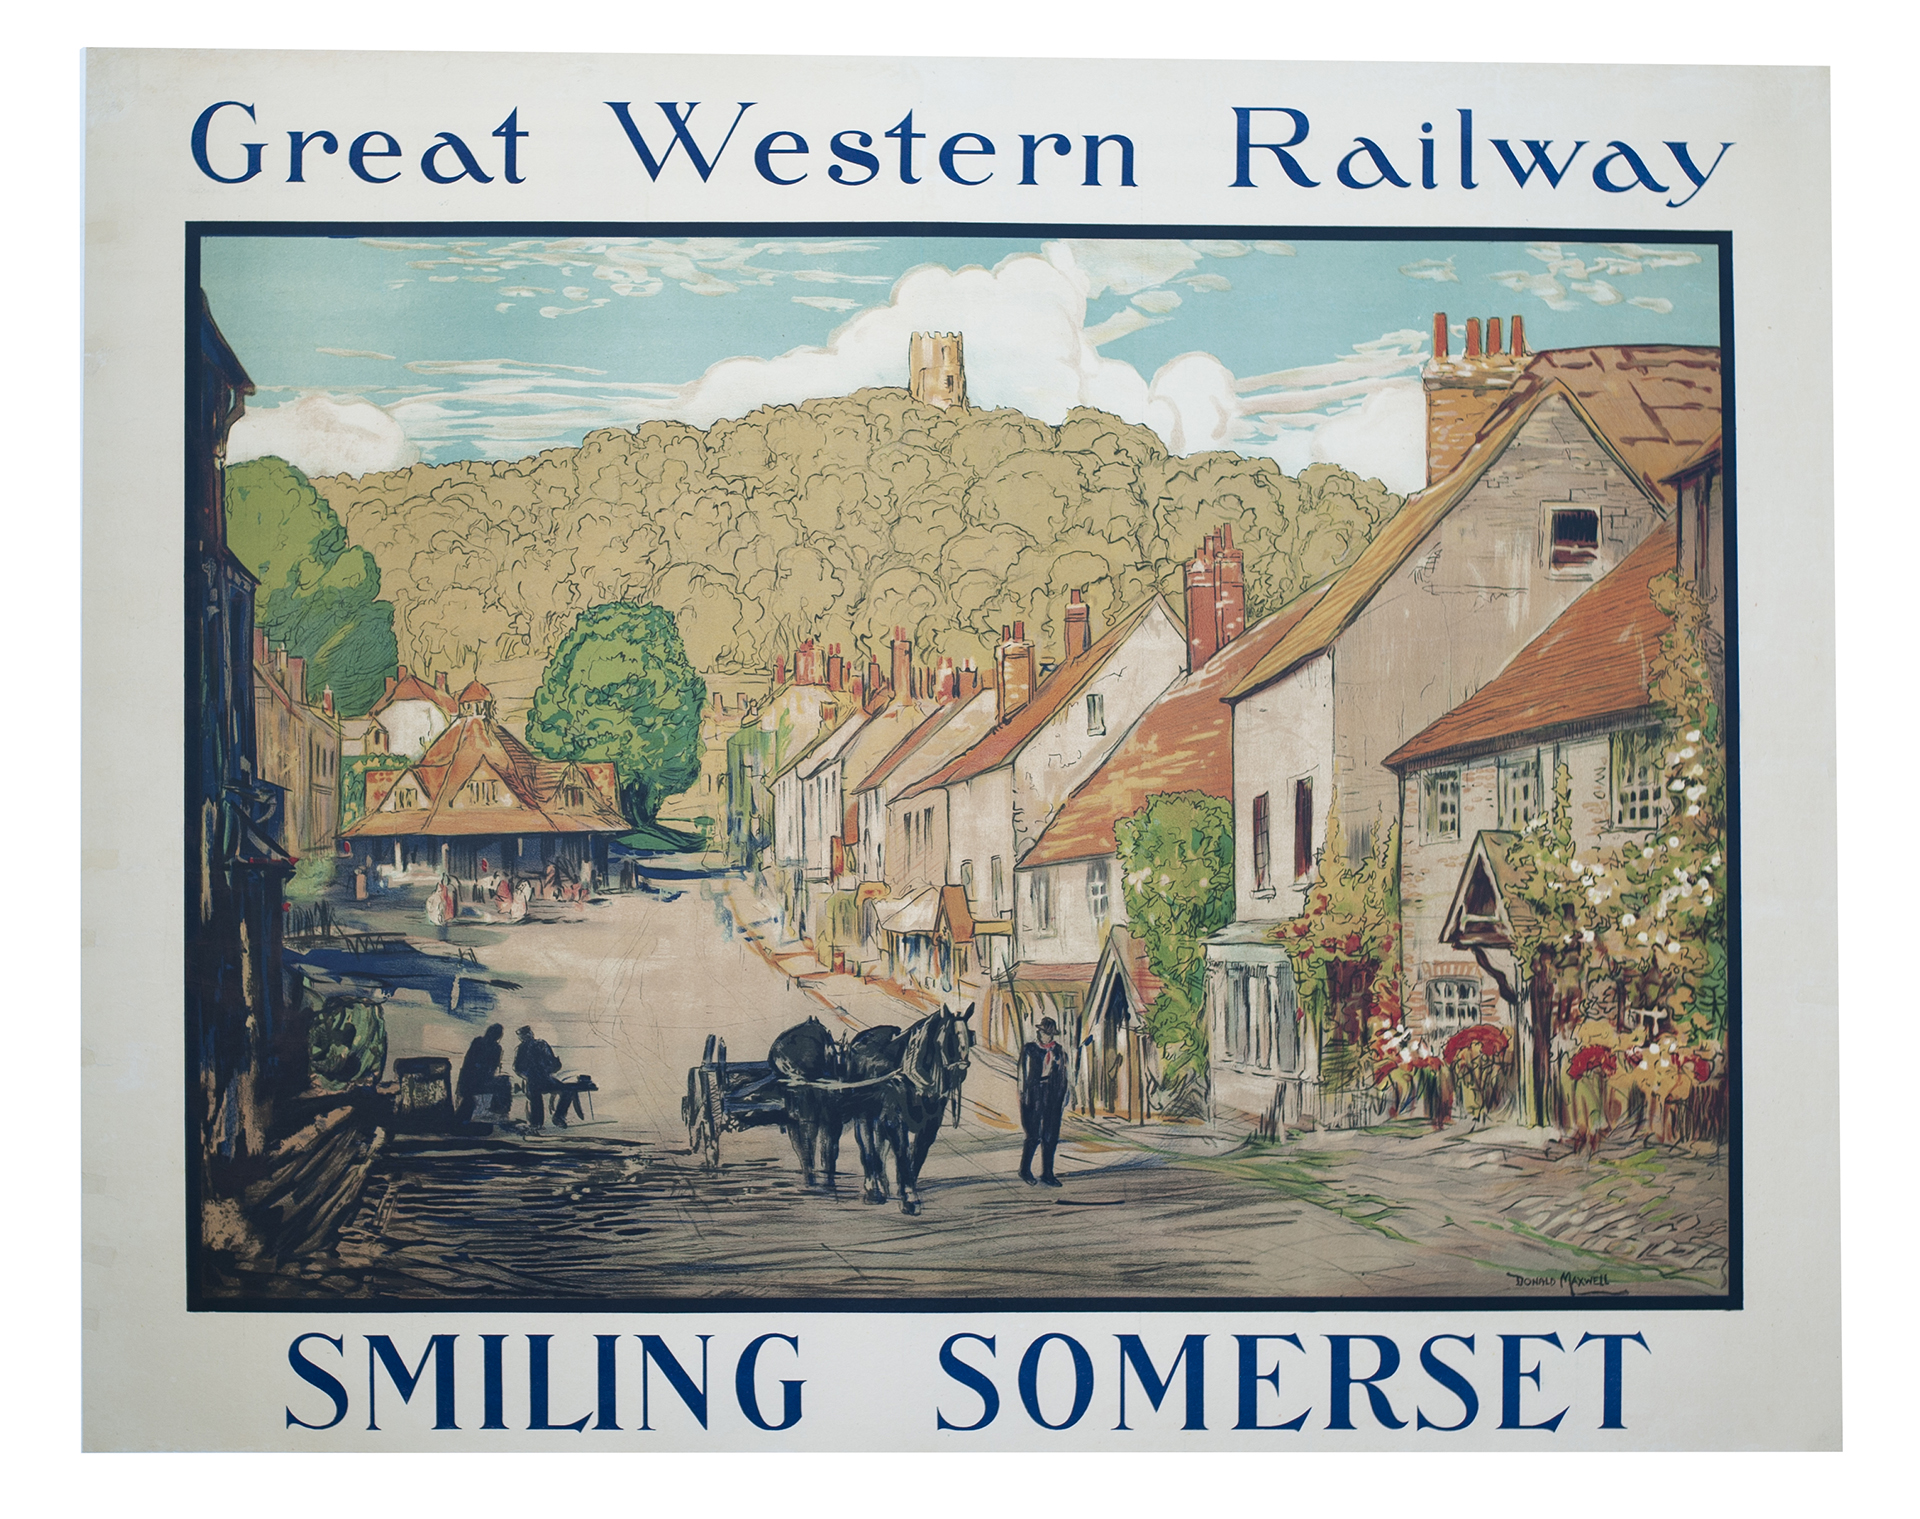 Poster GREAT WESTERN RAILWAY SMILING SOMERSET by Donald Maxwell. A rare Poster